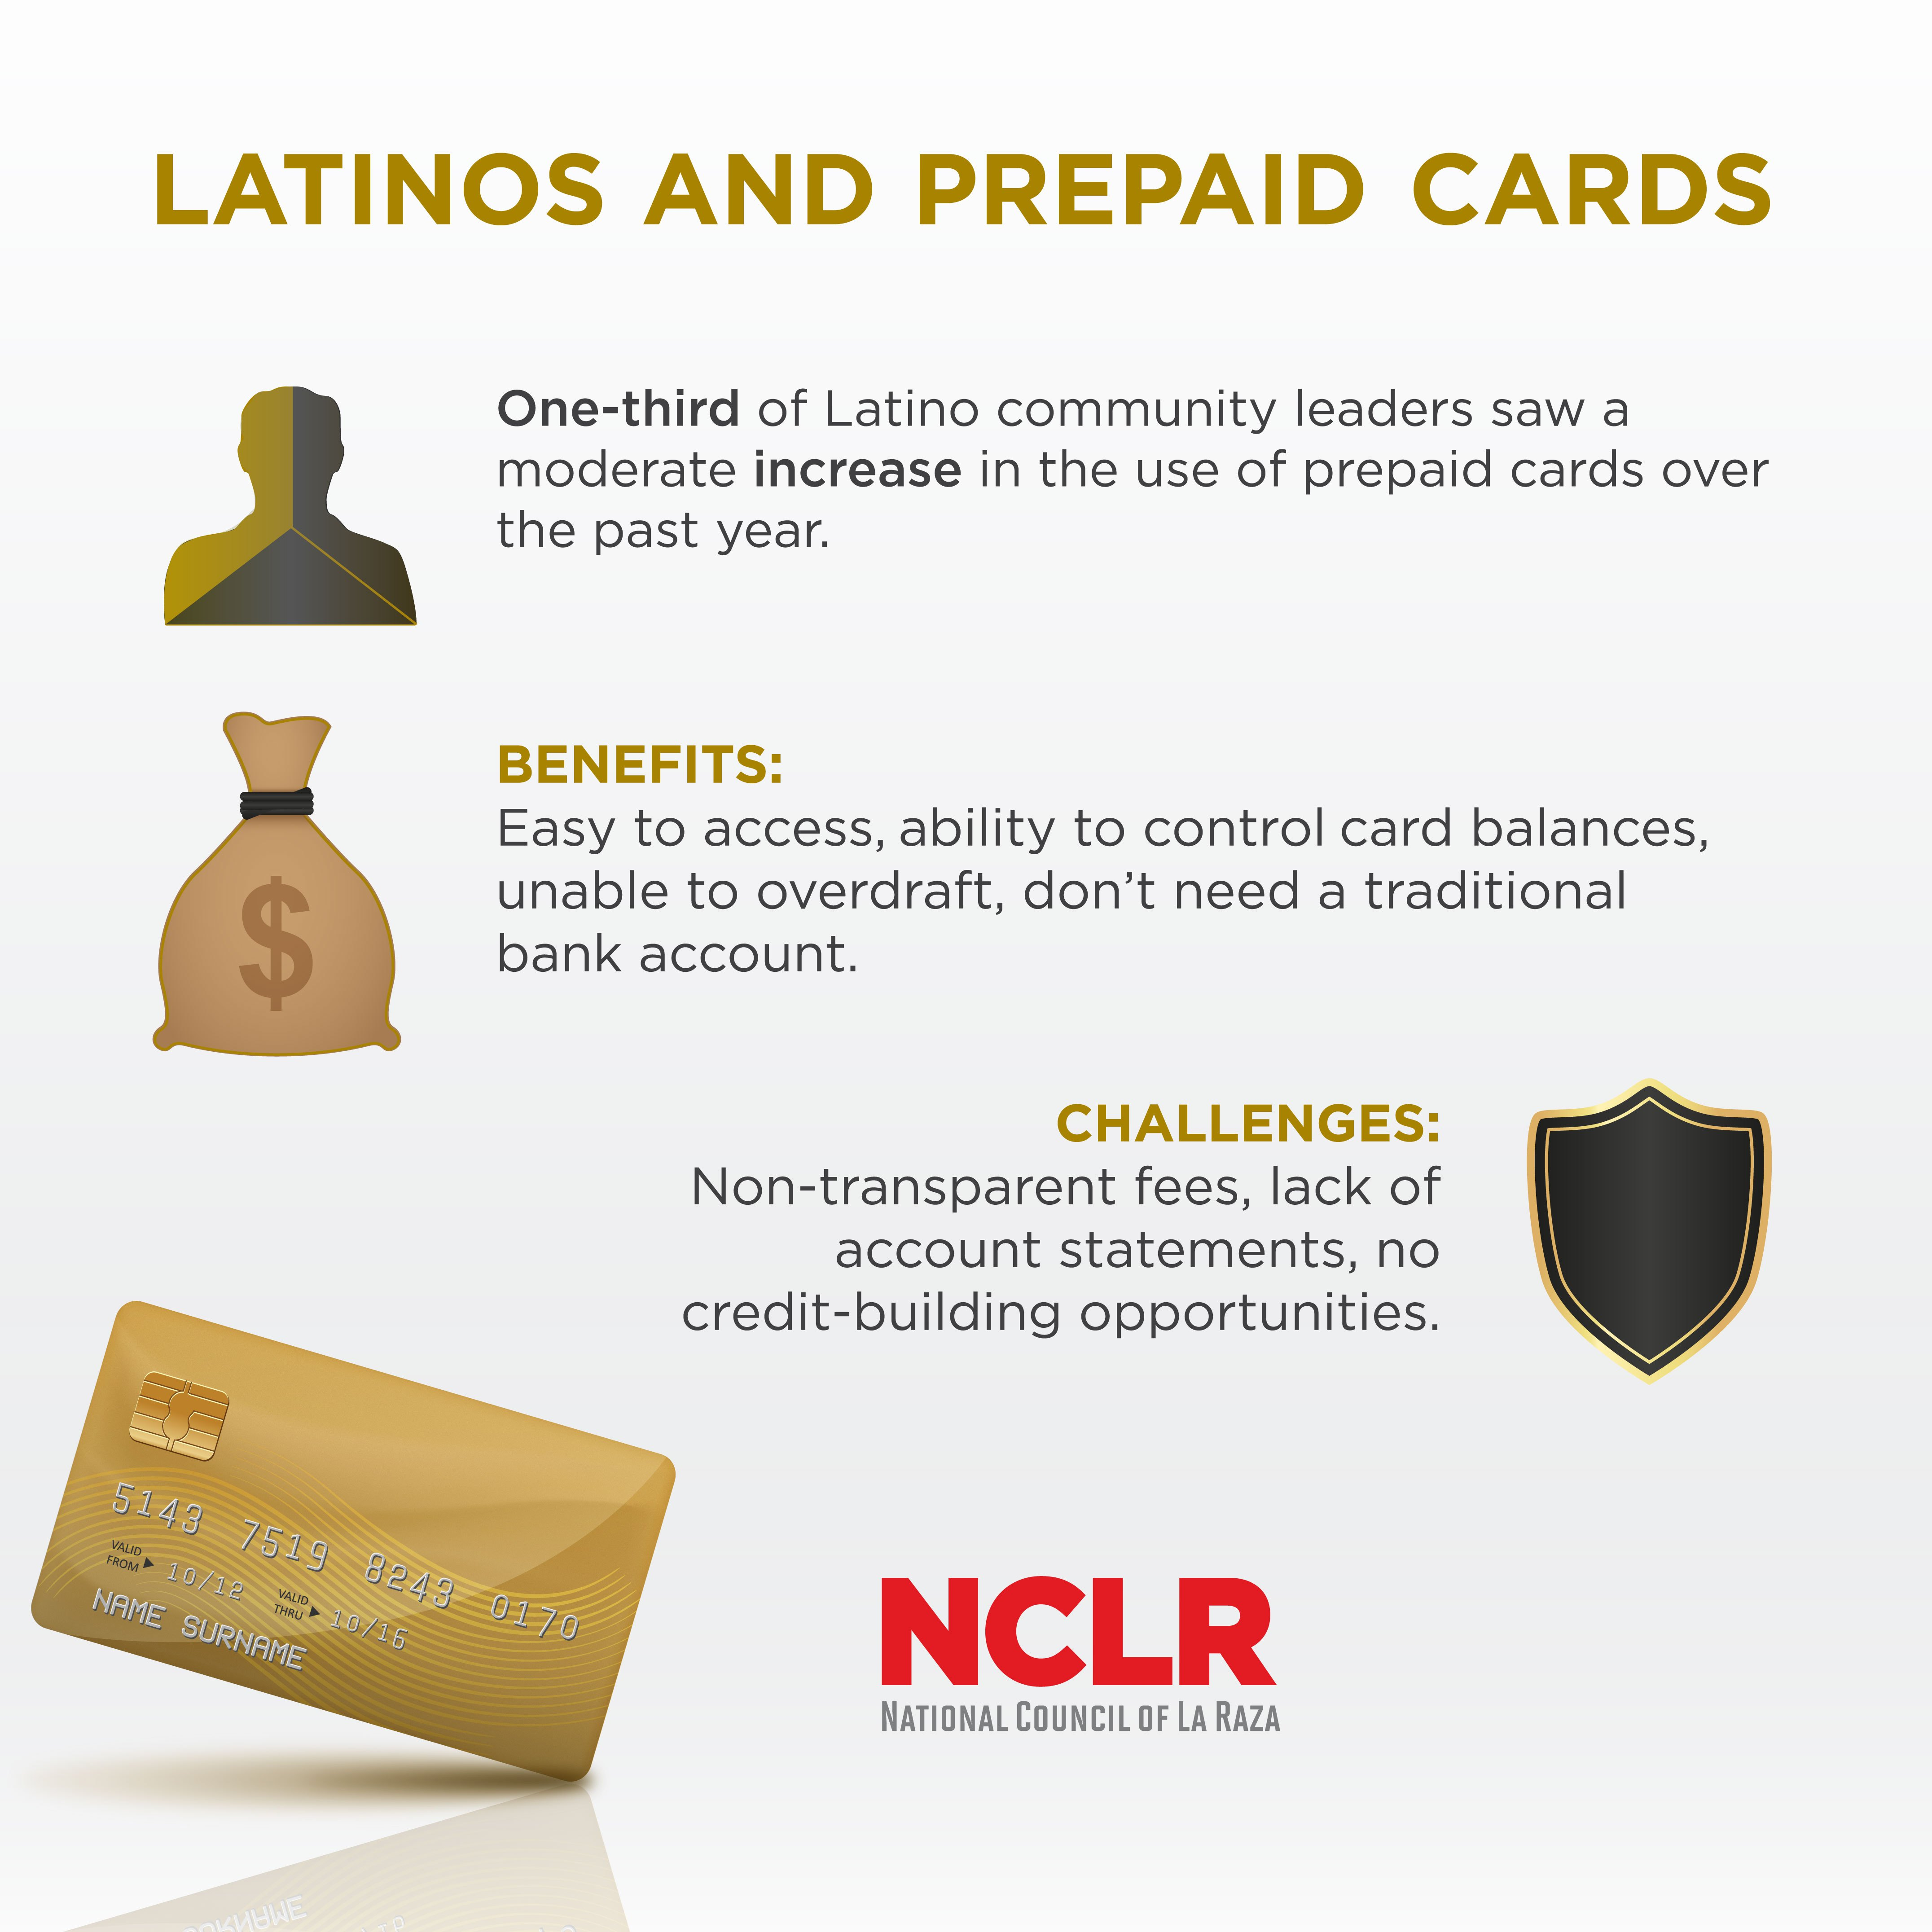 Prepaid-cards-sharegraphic-1